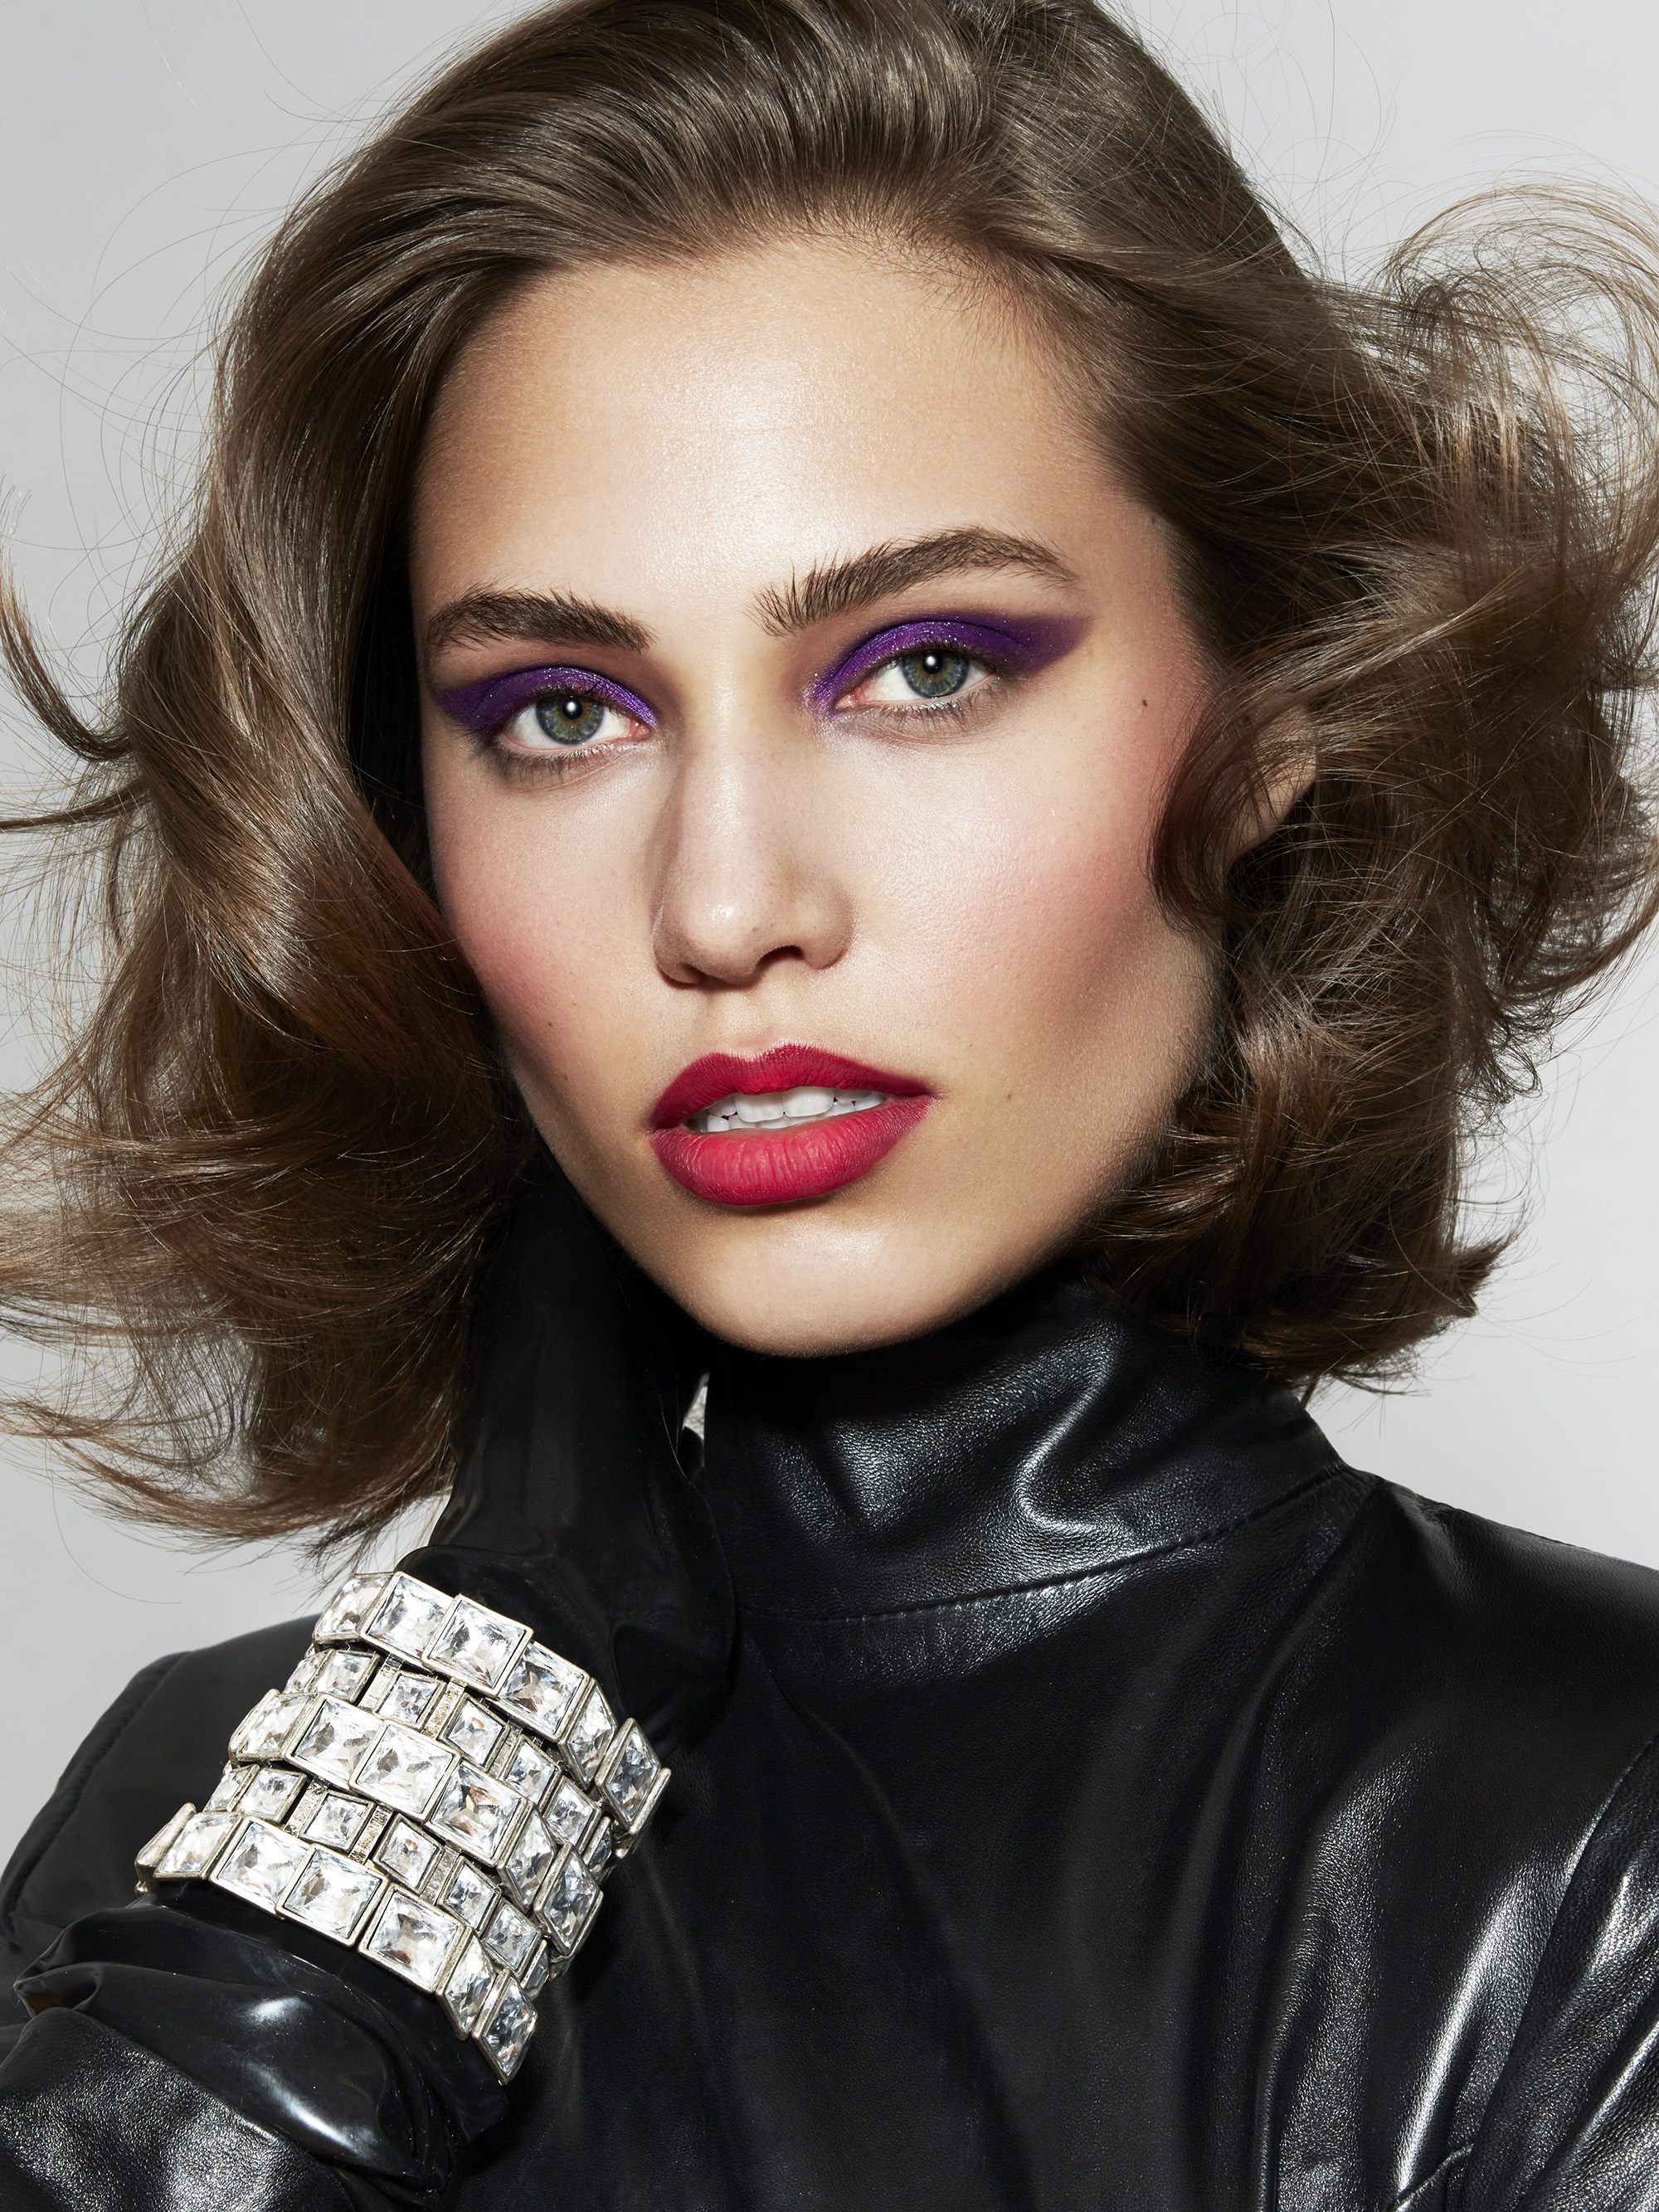 Stepping Out: Revisiting '80s Glam - '80s-Inspired Makeup Hair